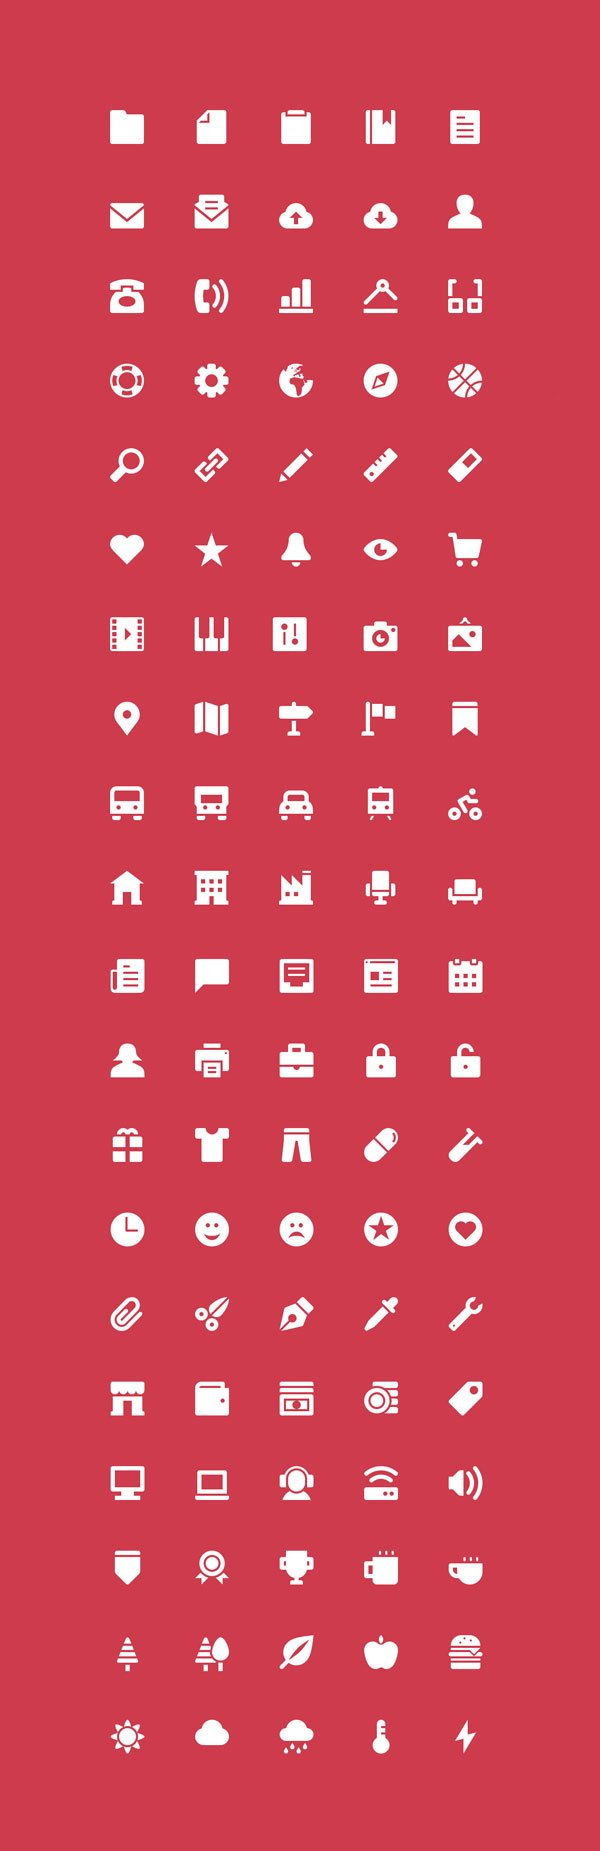 The Icons: 100 Free Icons